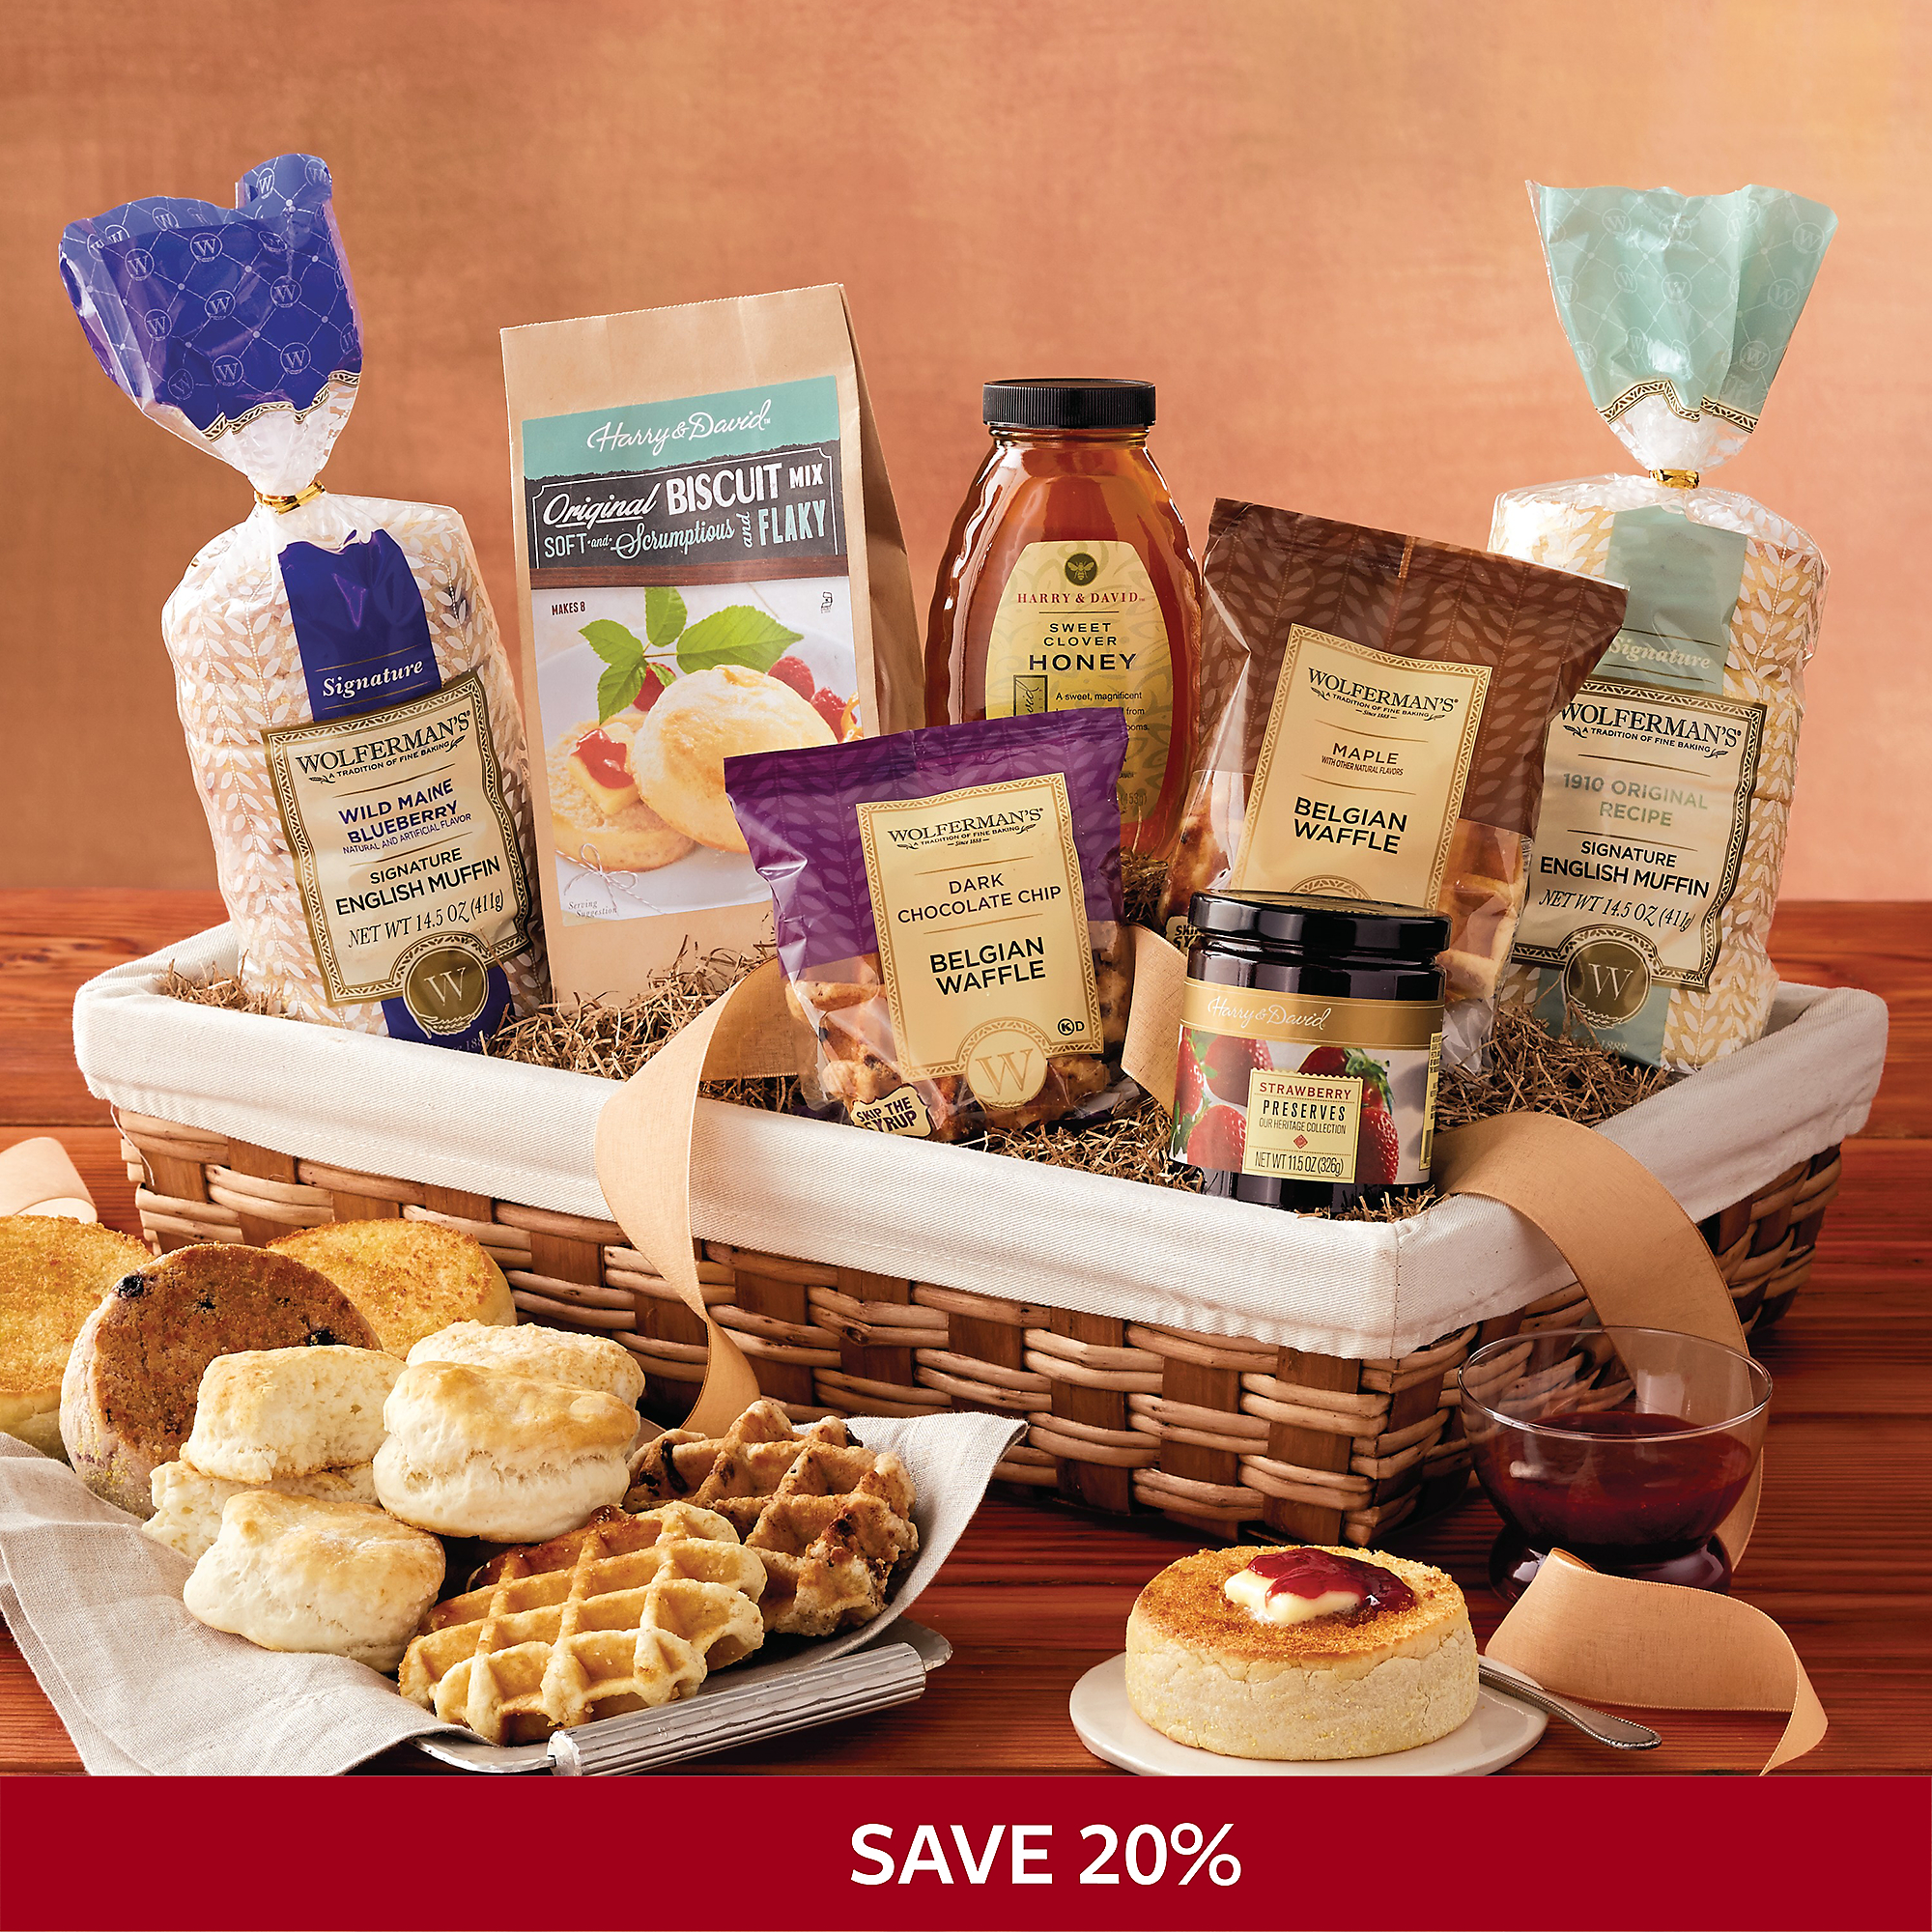 All About Gifts & Baskets offers gift baskets of flowers, fruits, chocolates, cookies, baked goods, and gourmet foods for all occasions and holidays. Buy gifts for anniversaries, birthdays, housewarming, sympathy, weddings, etc. and use our online coupons to save money.